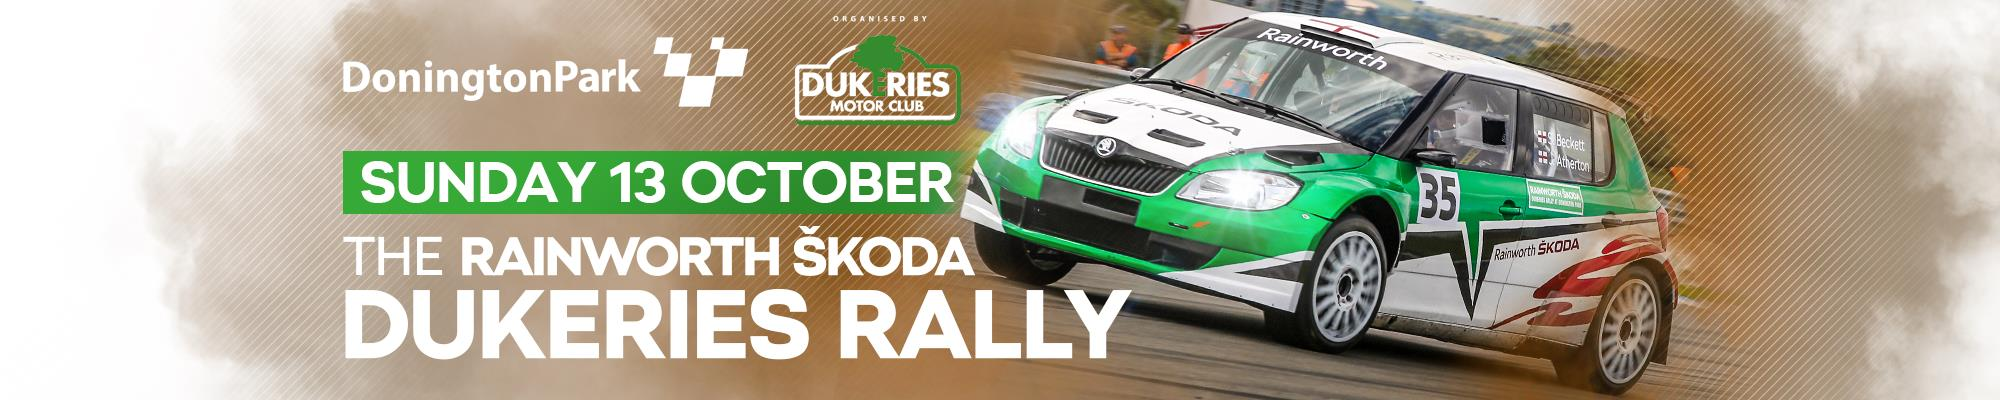 Rainworth Skoda Dukeries Rally